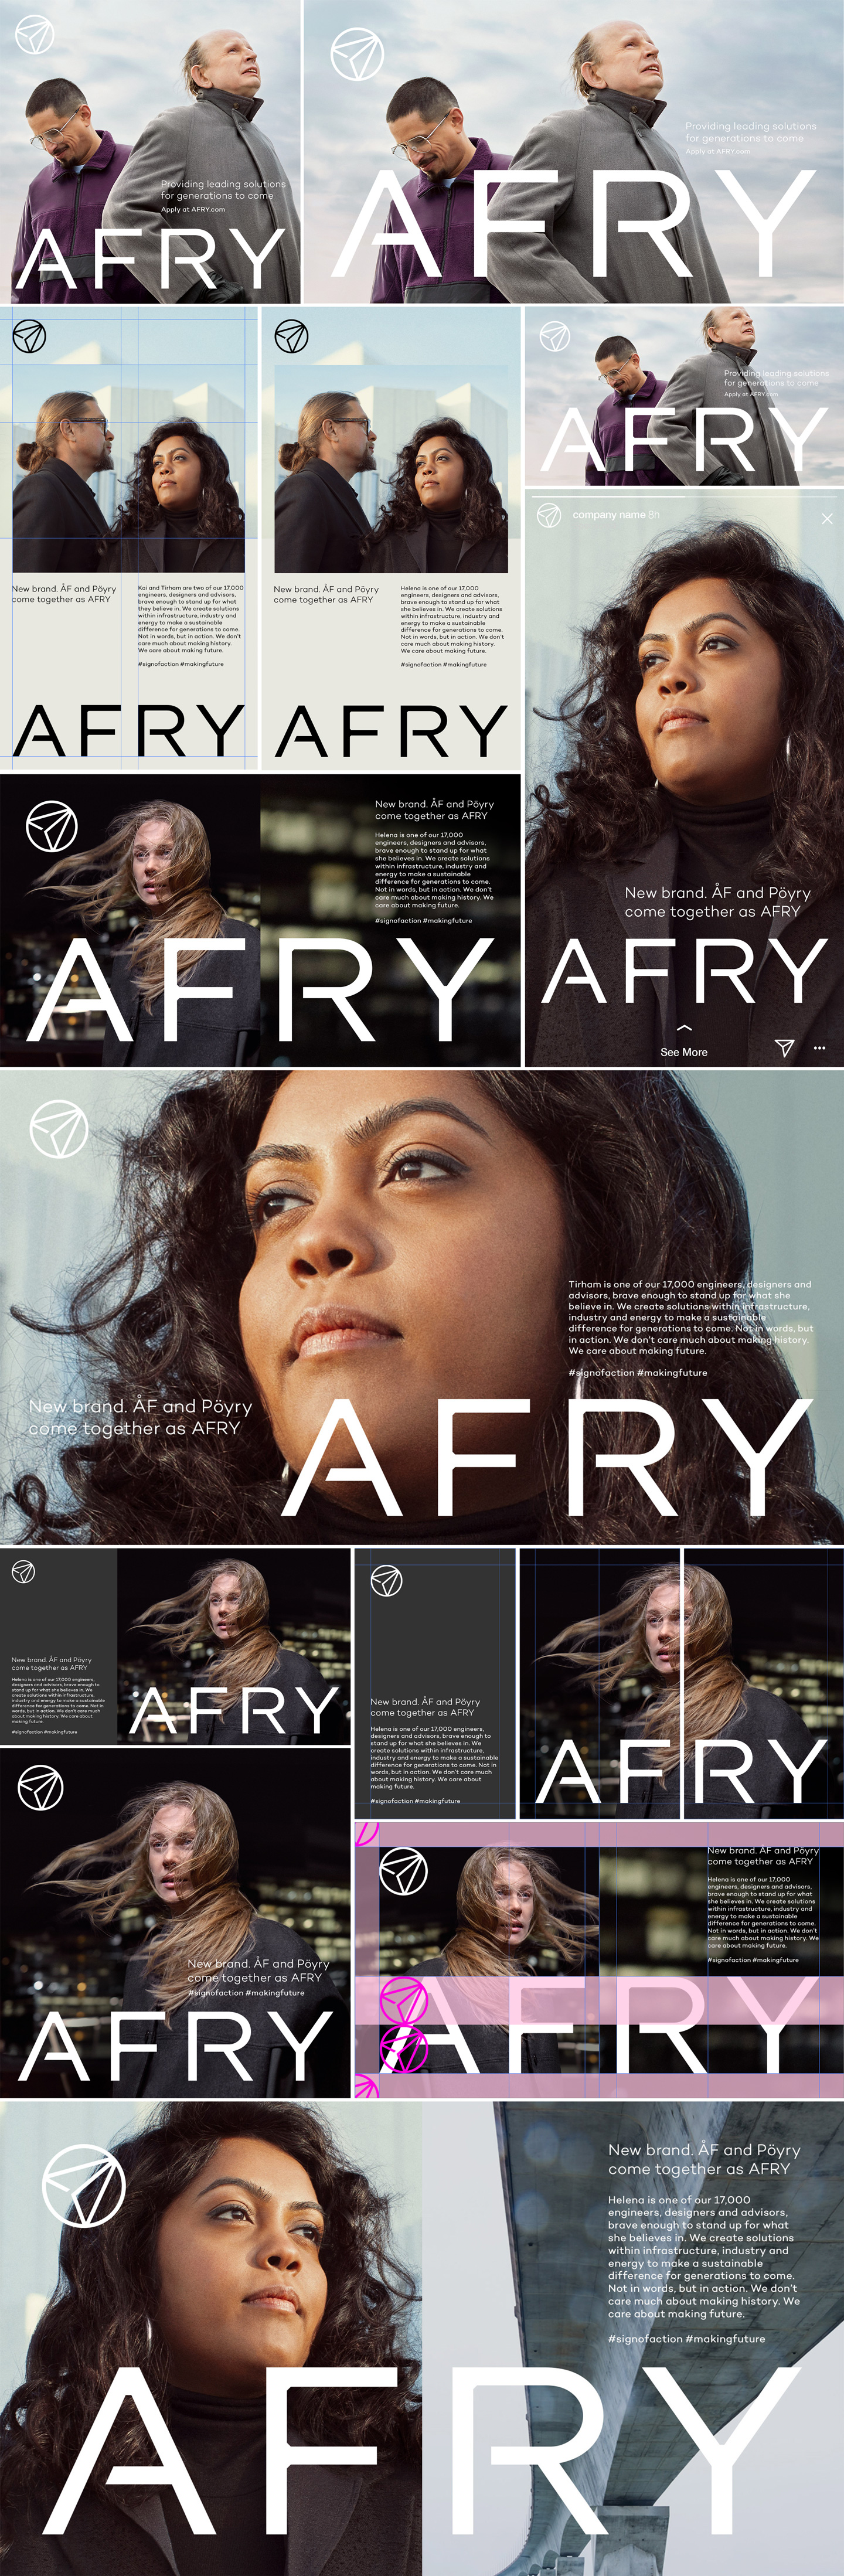 AFRY-Overview-2